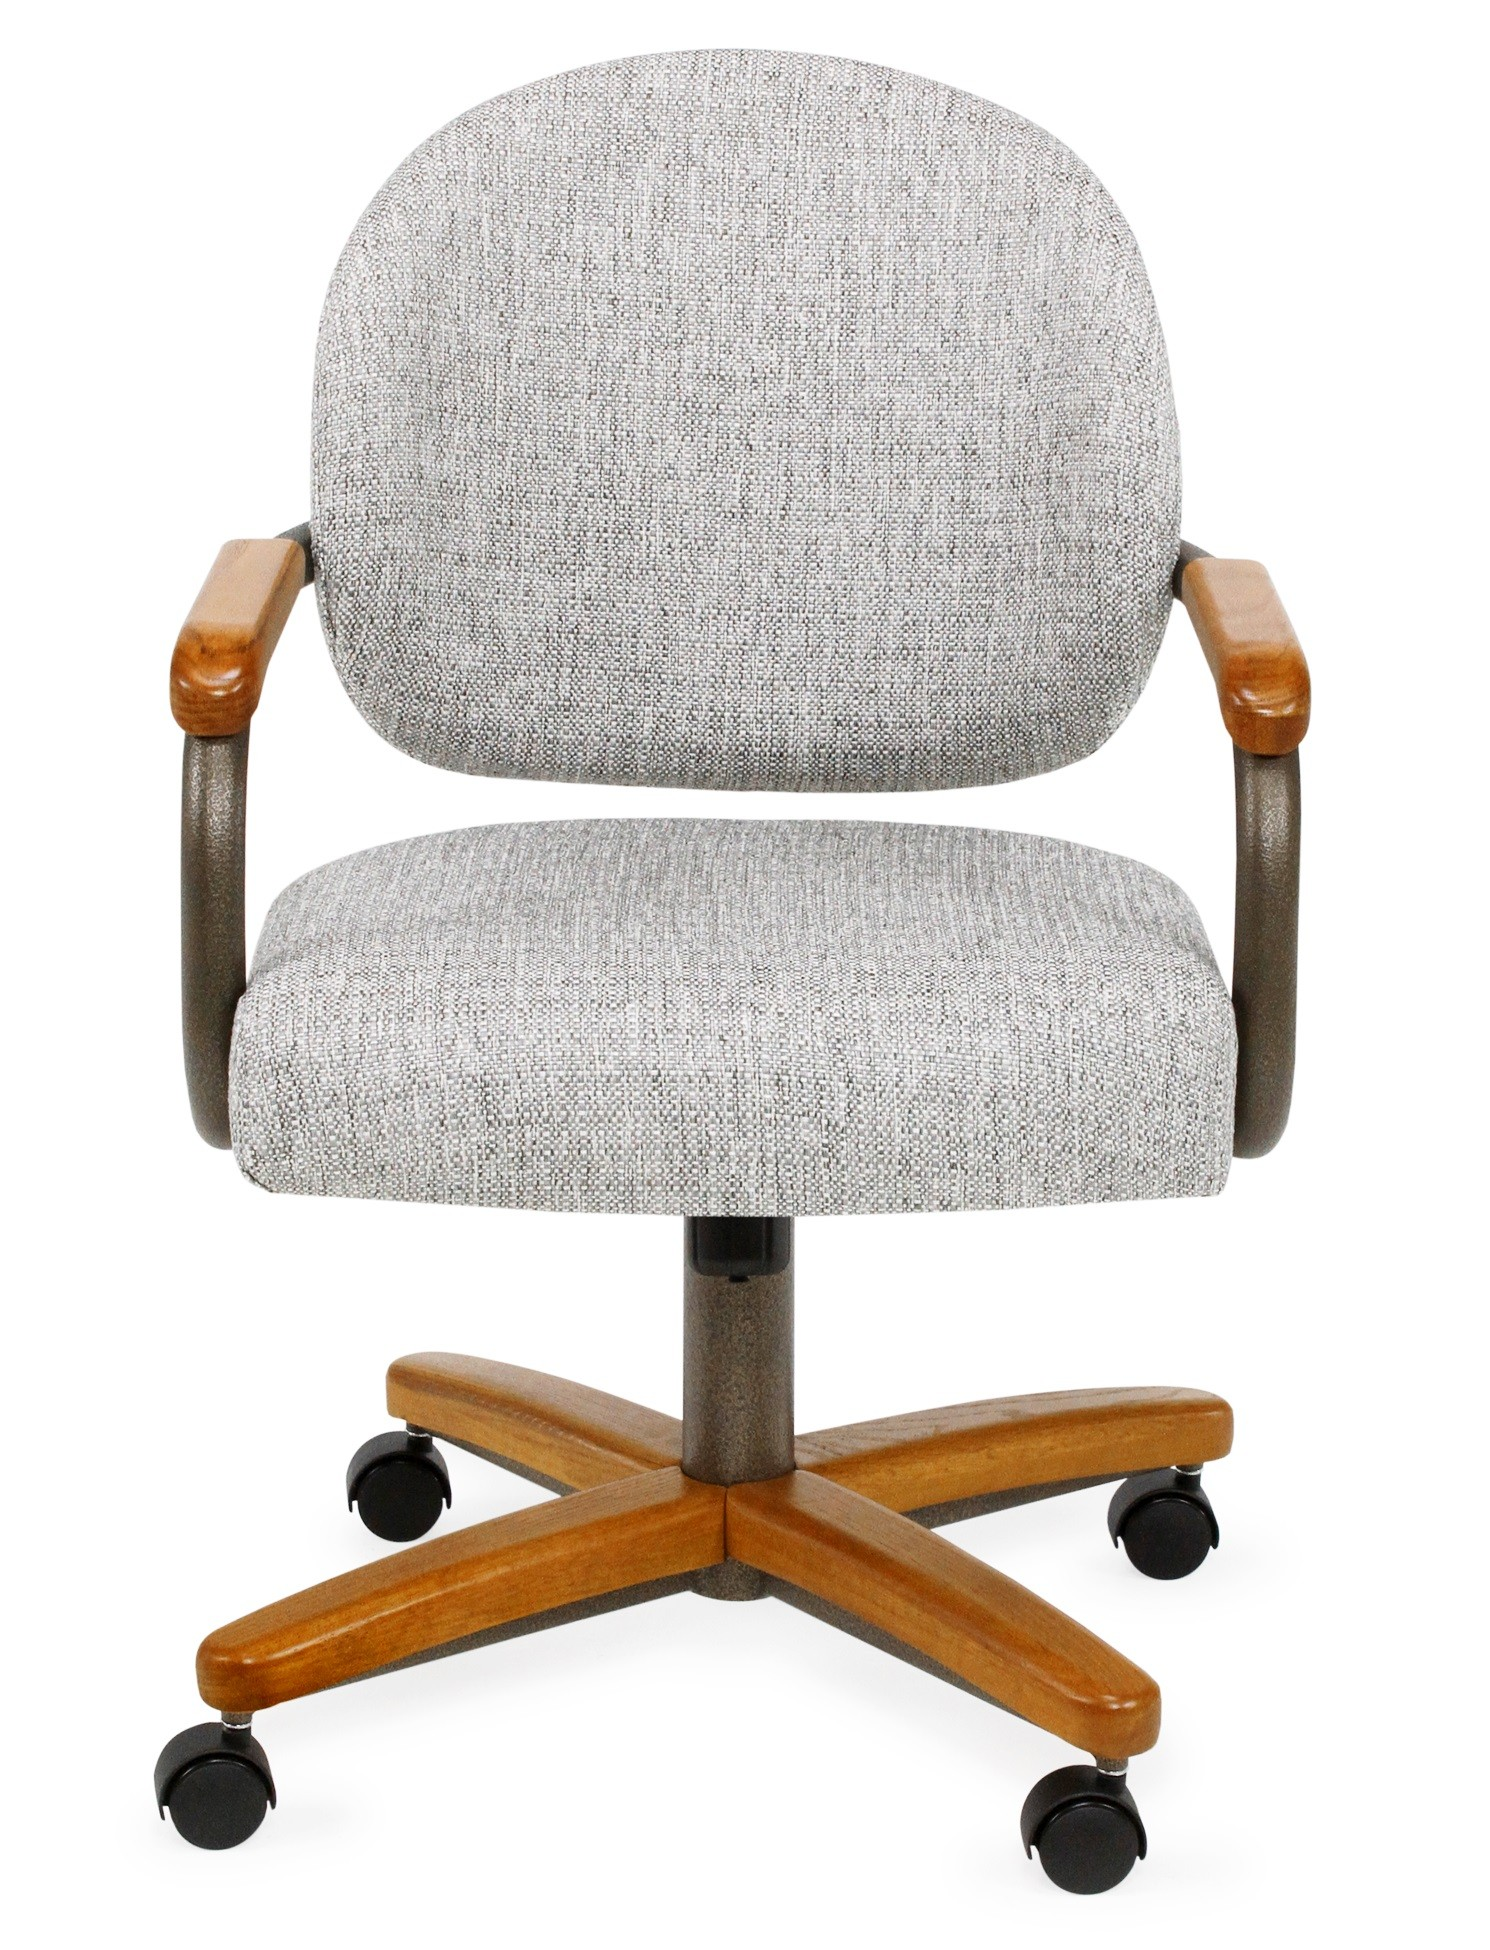 chromcraft furniture kitchen chair with wheels montessori tools c362 935 swivel caster dinette discount